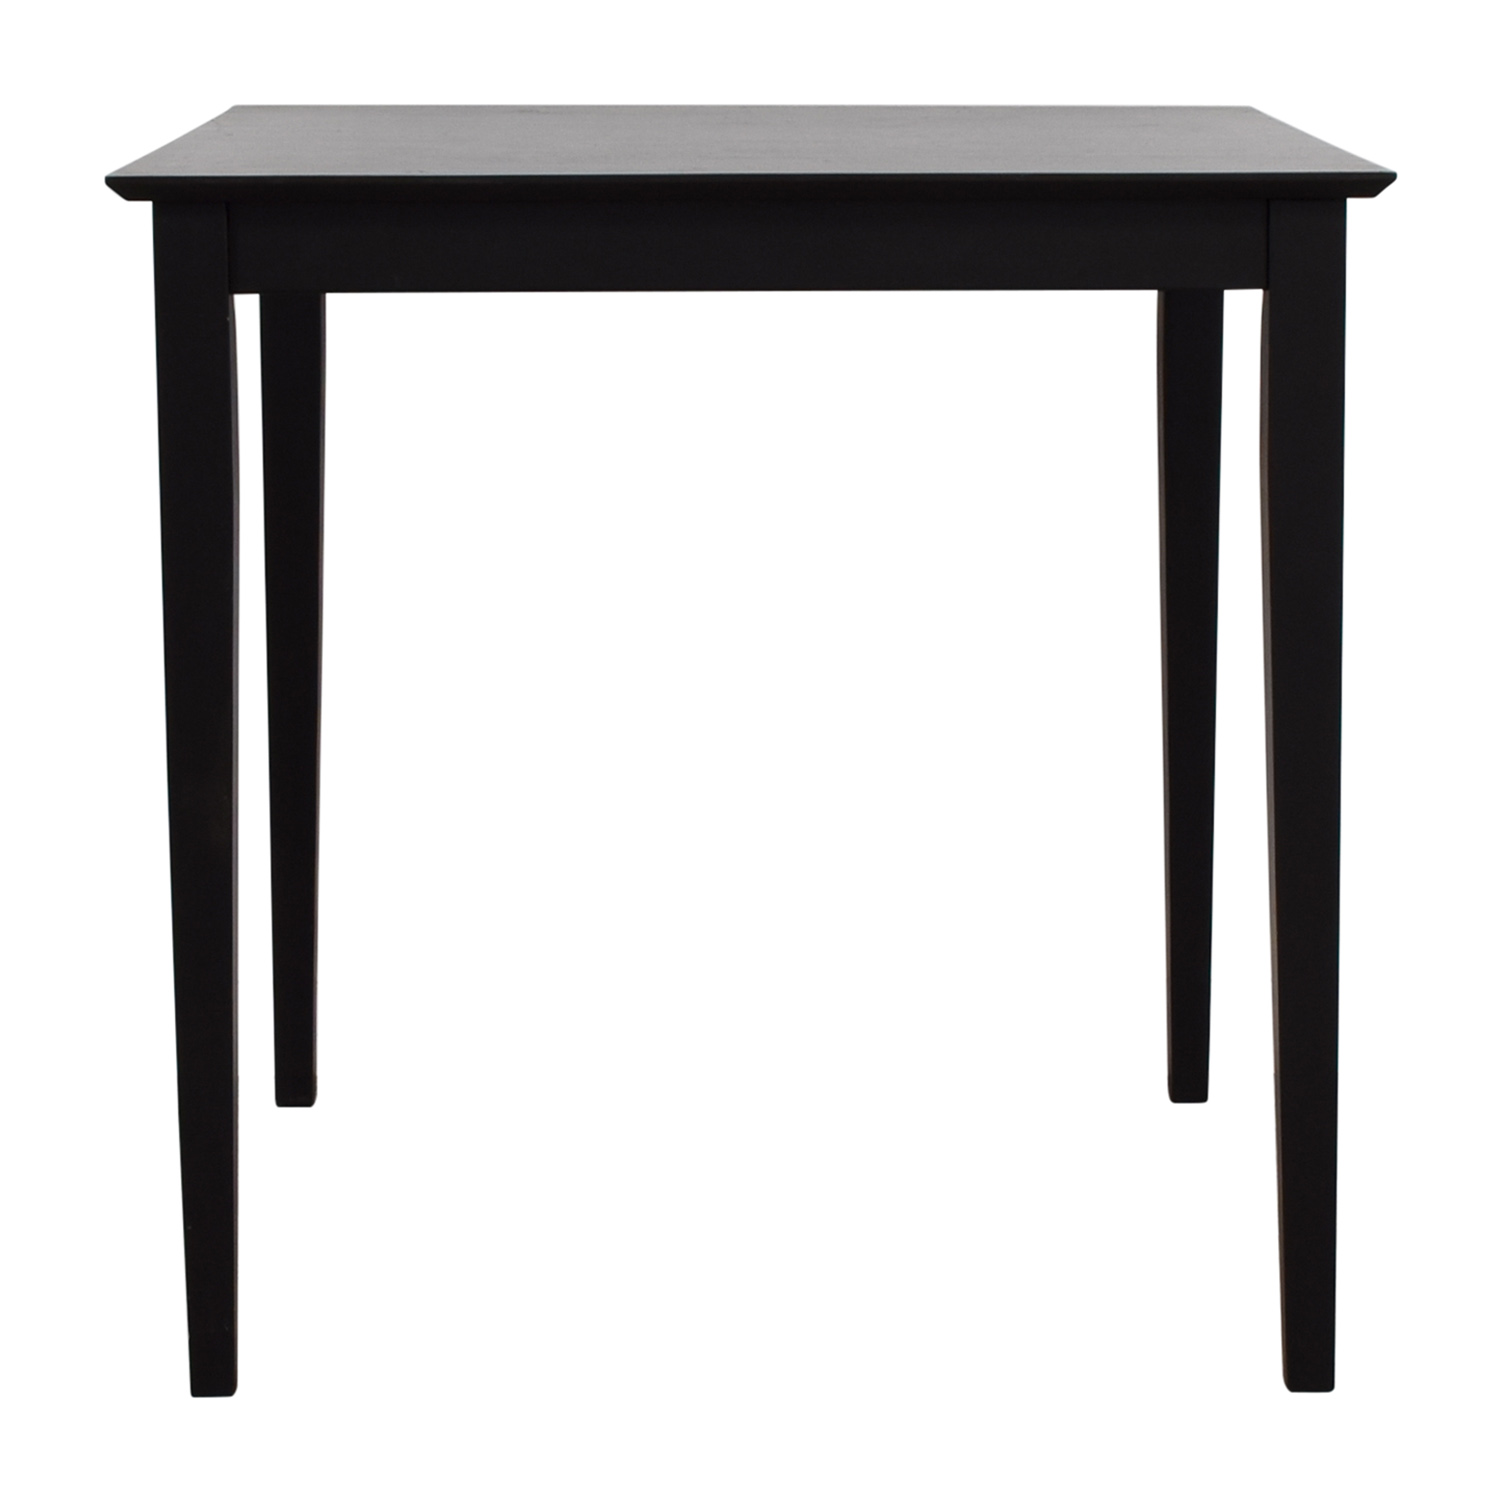 IKEA IKEA Black Bar Table on sale